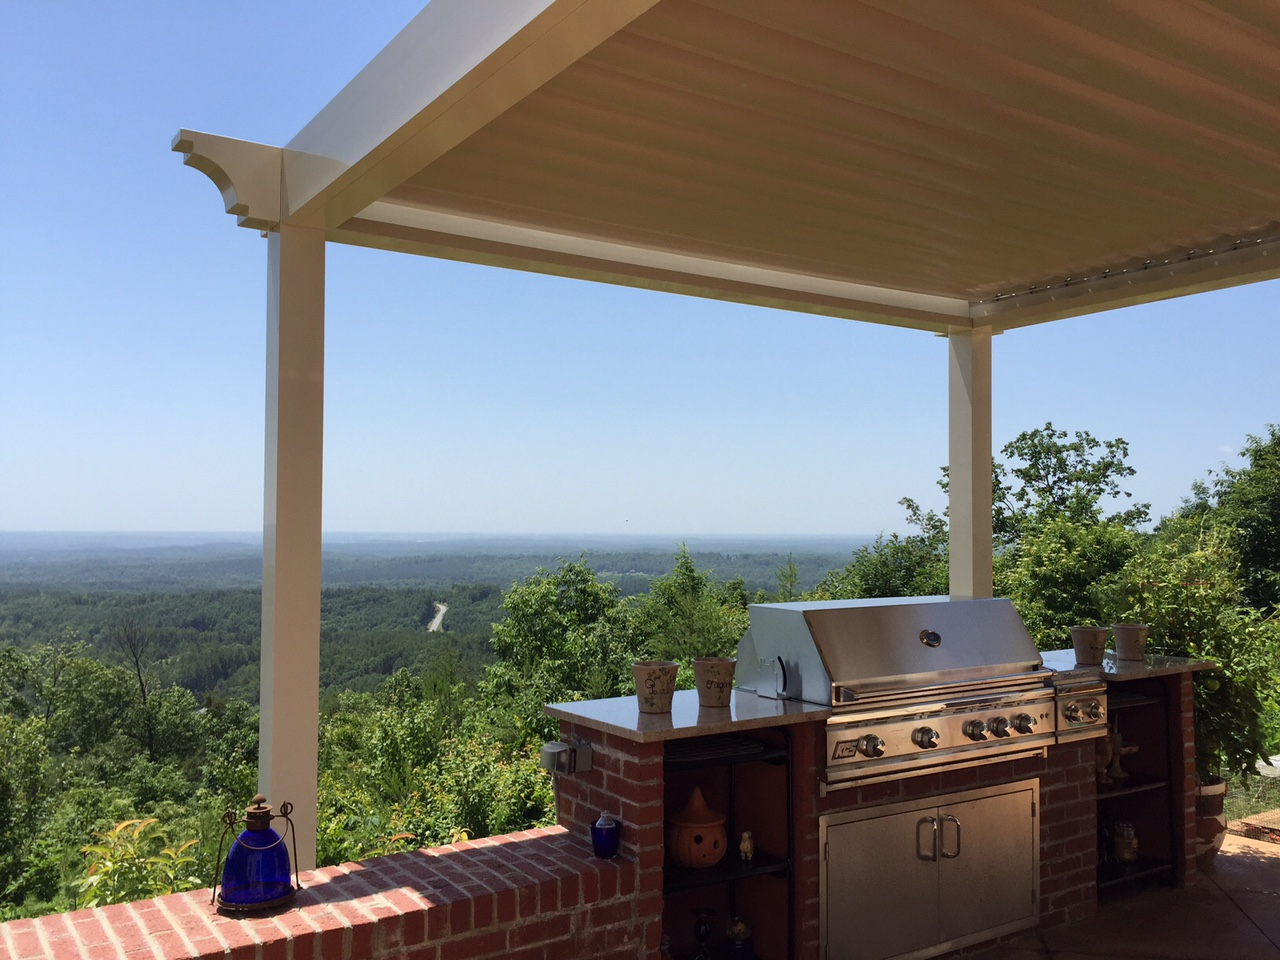 Salem Sc Pergola That Opens And Closes Palmetto Outdoor